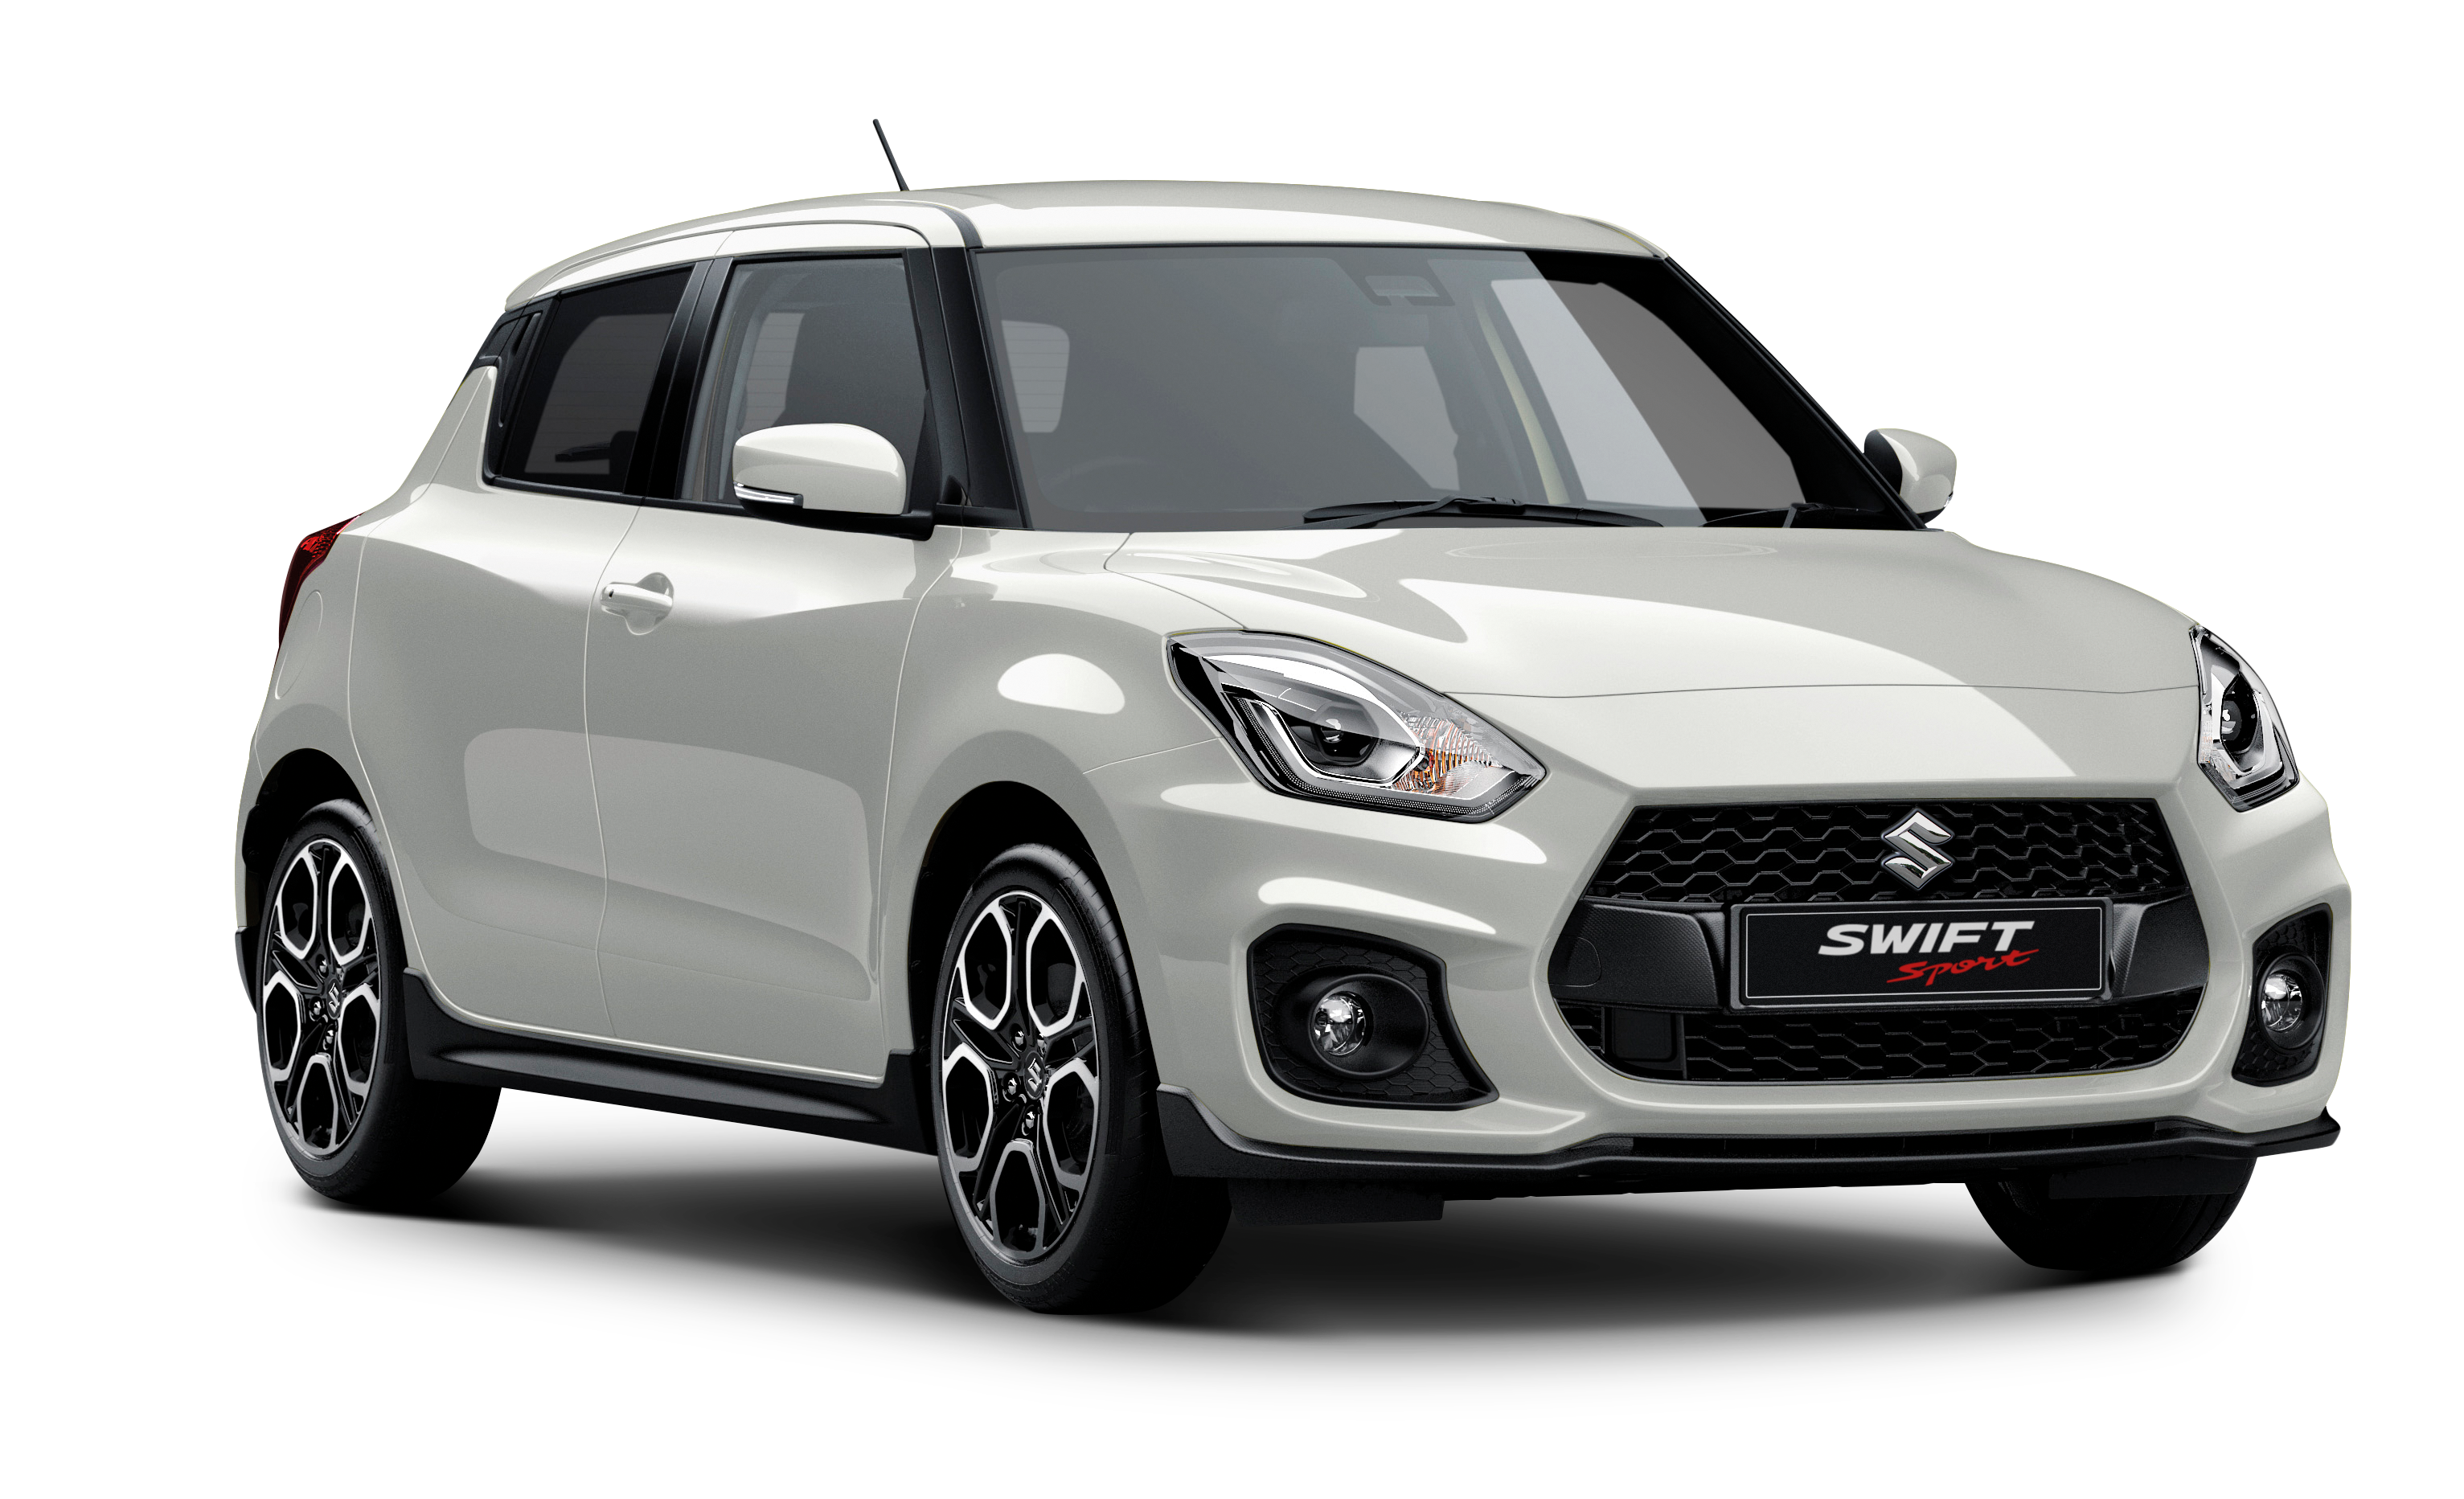 Suzuki Swift Specs